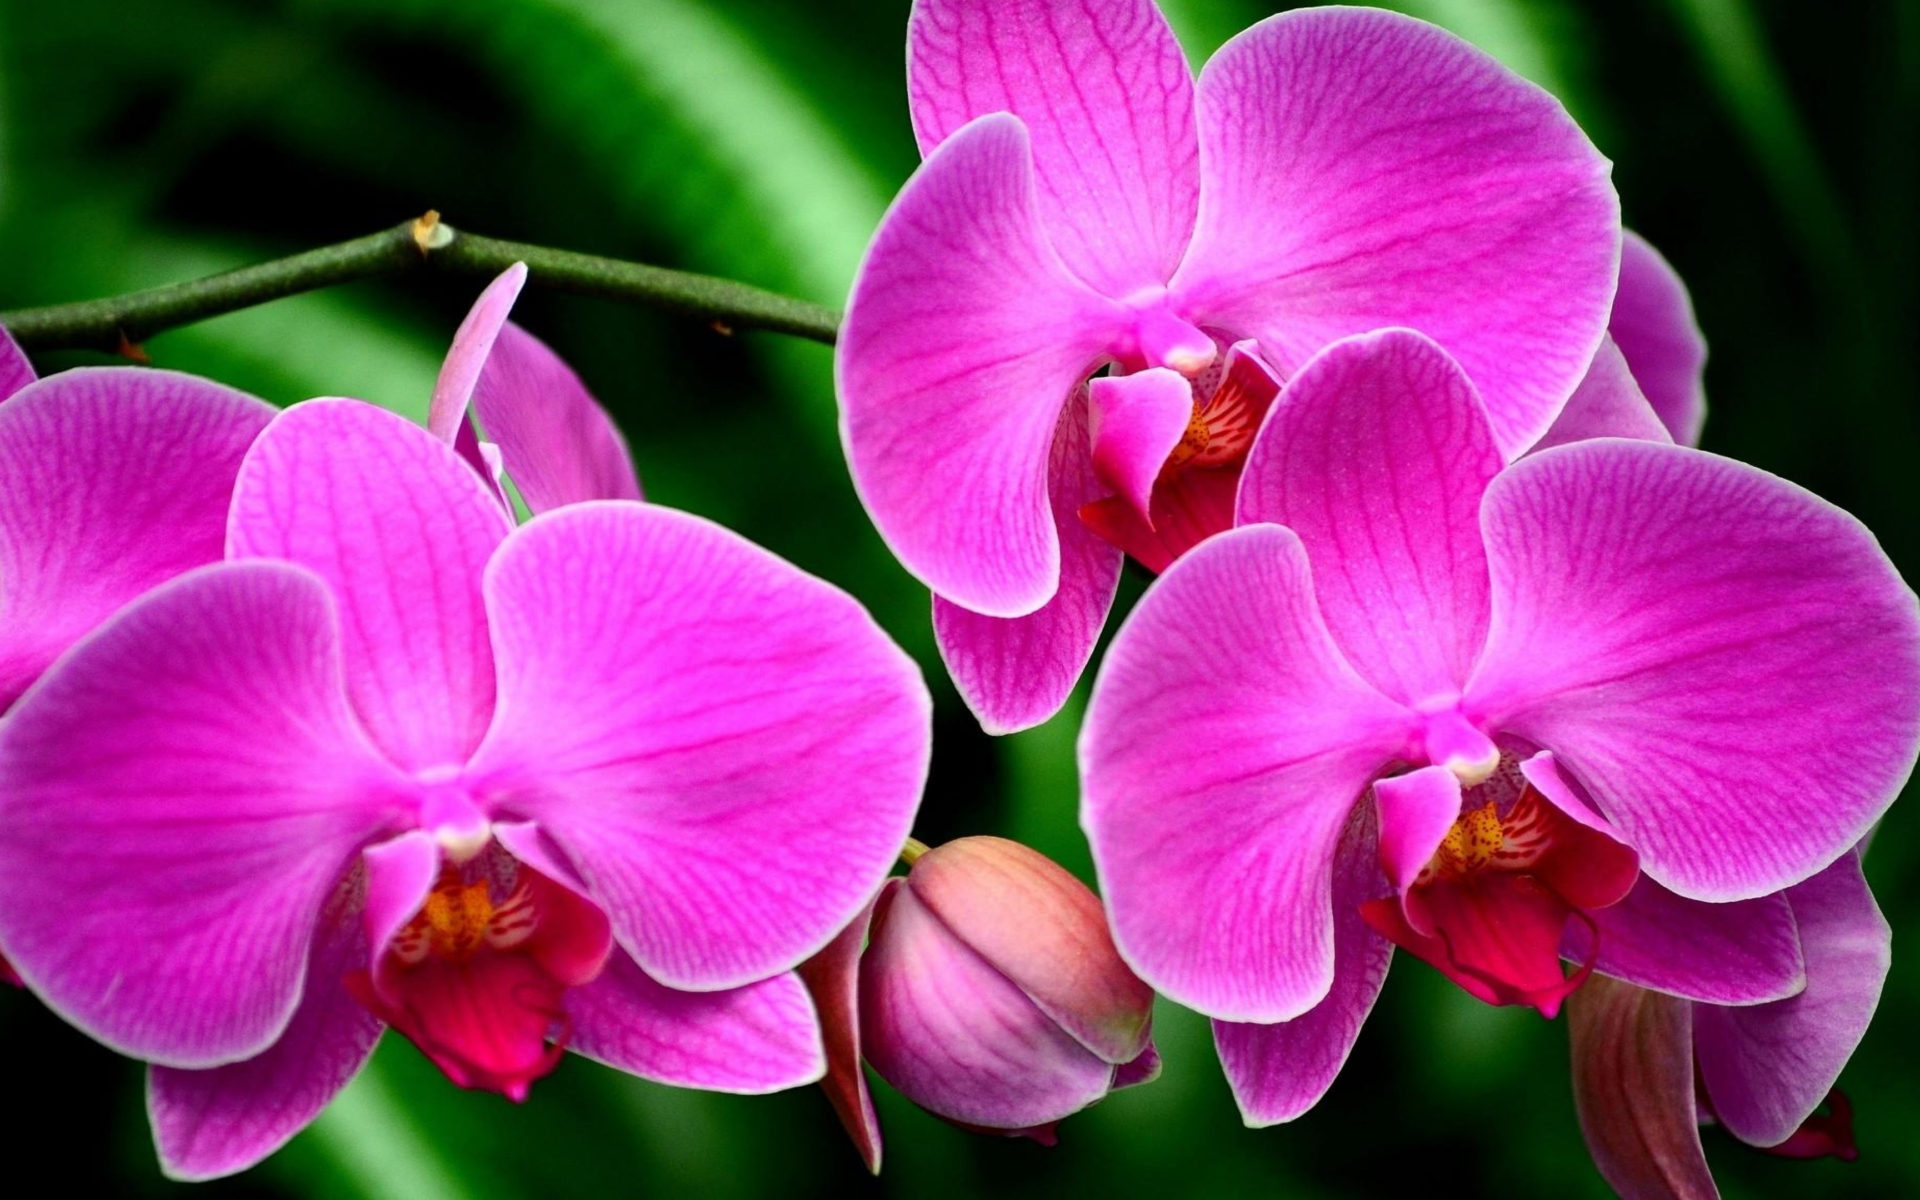 Purple Flower Orchids Exotic Flower Branch Ultra Hd Wallpapers For Mobile Phones Tablet And Pc